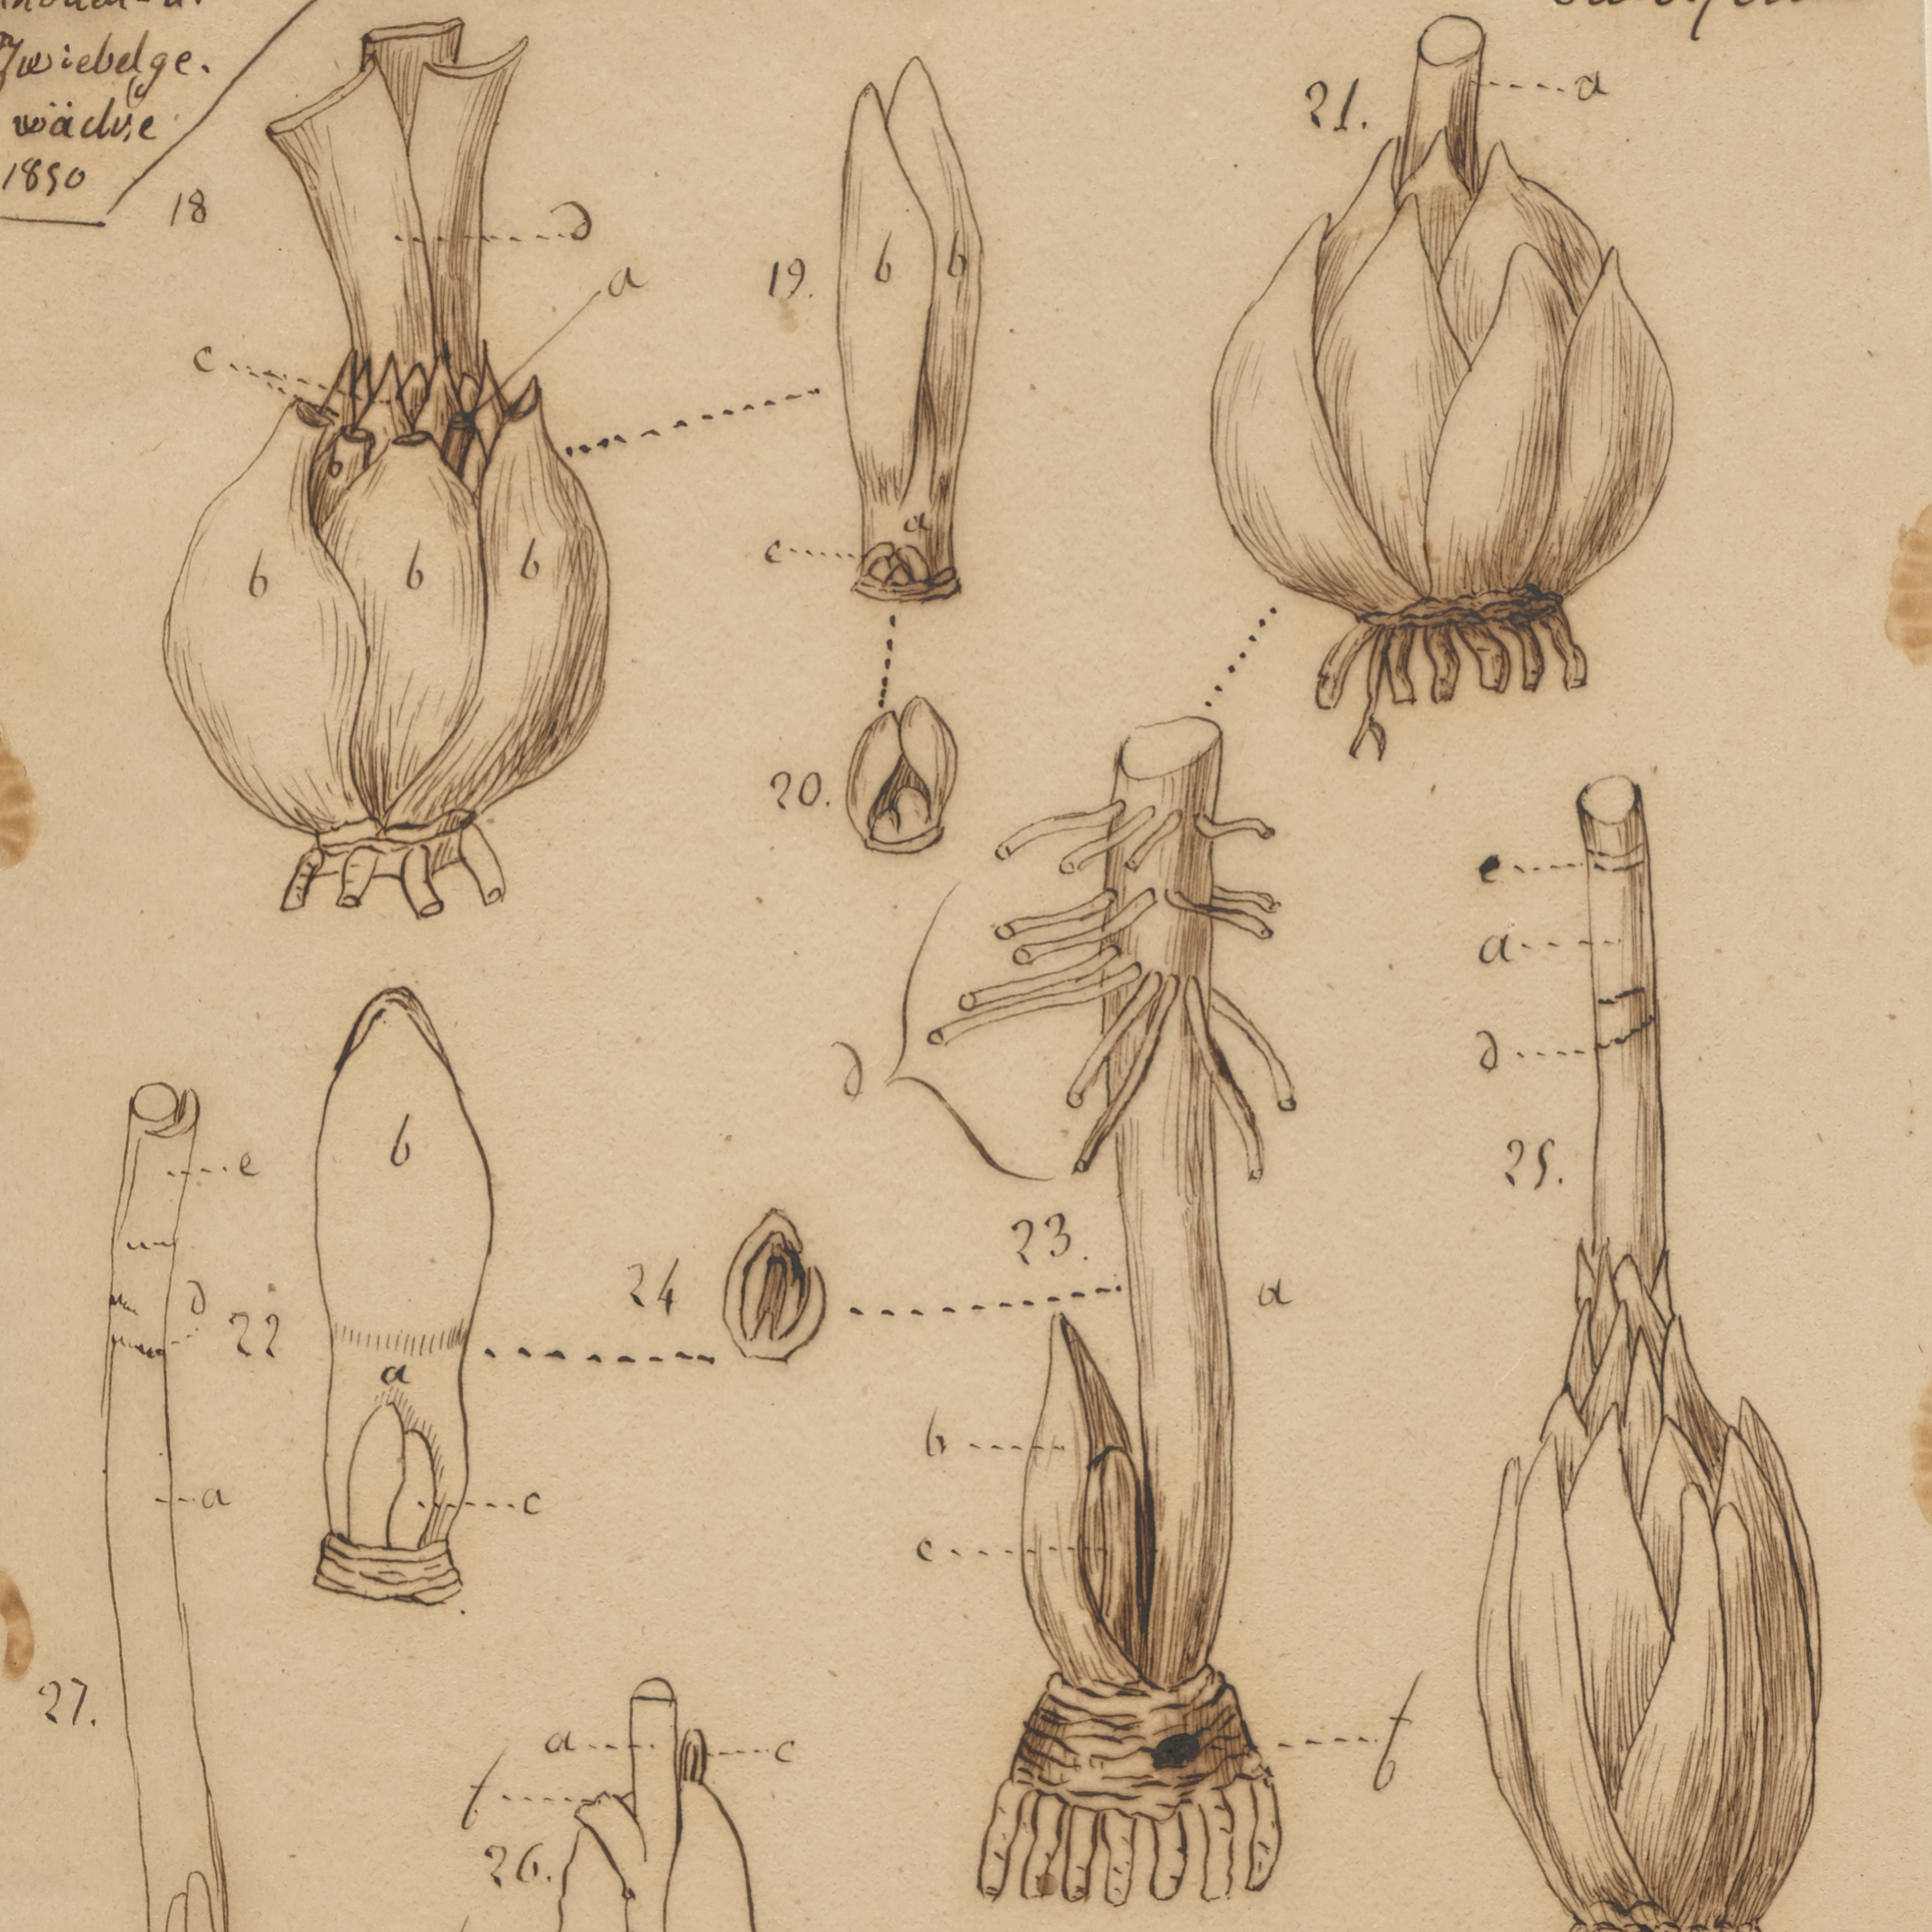 The Scientific Notebooks of French Lily Specialist Pierre Étienne Simon Duchartre